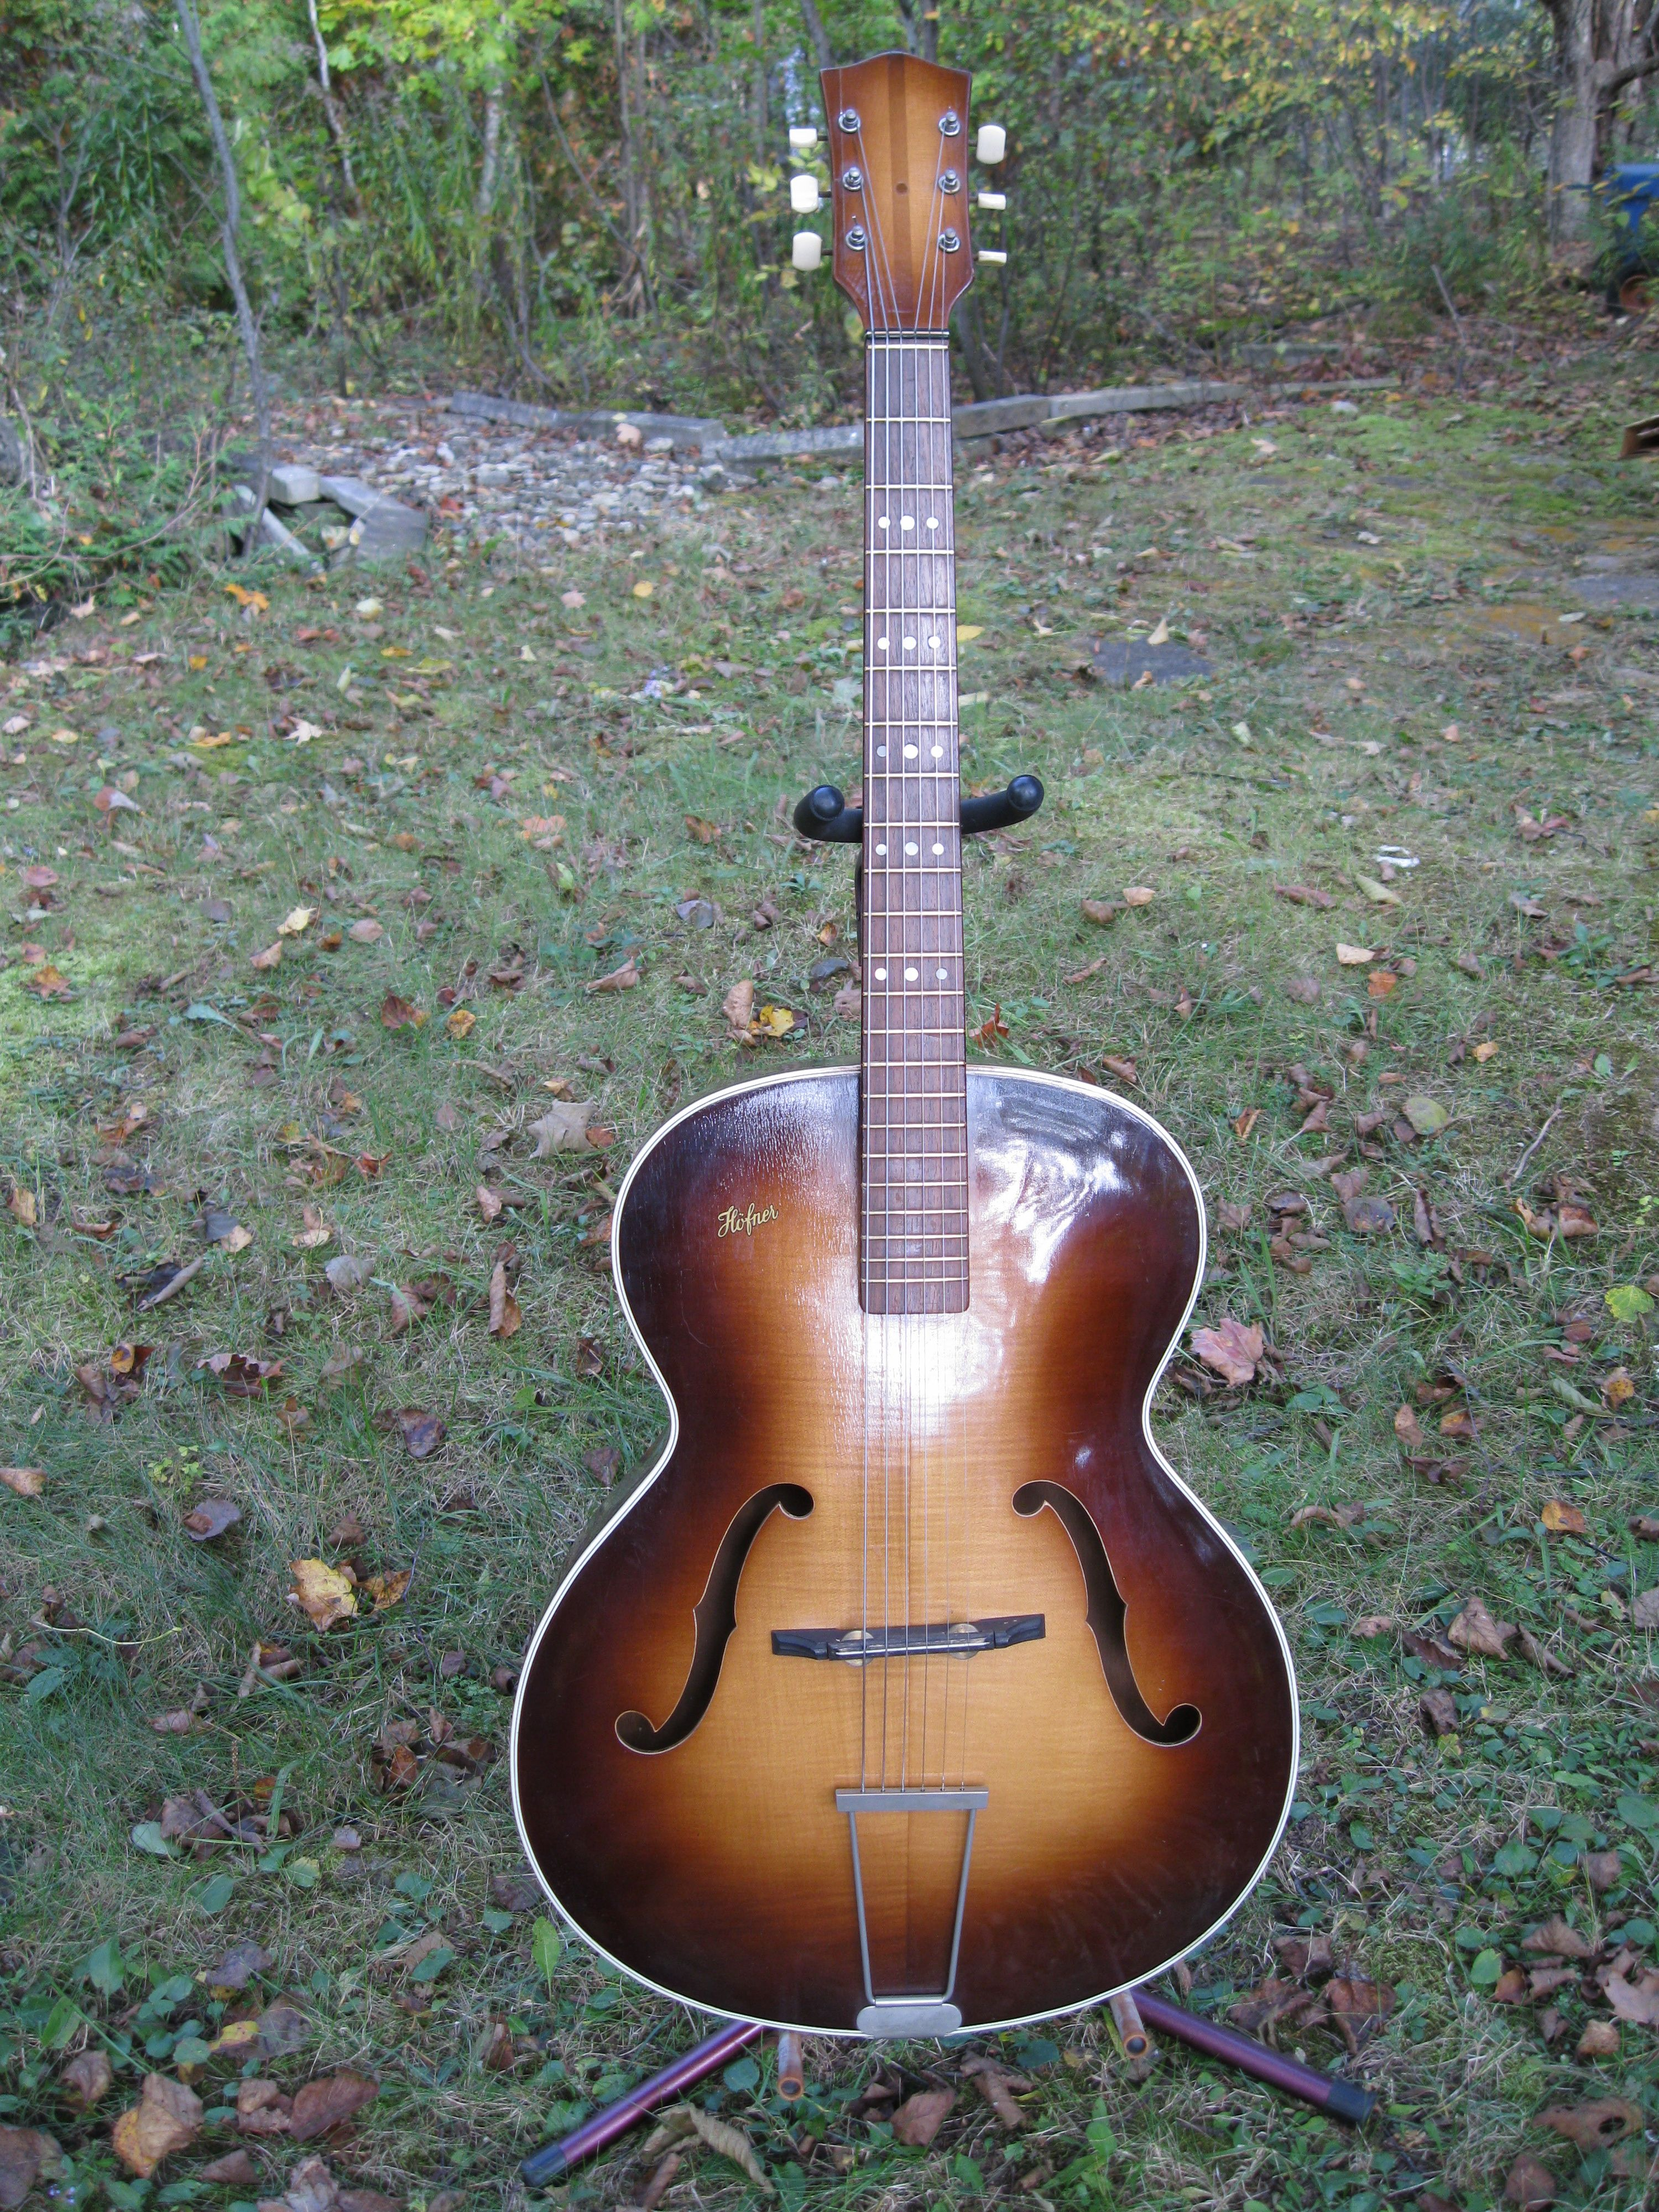 Old Hofner Guitars are really cool